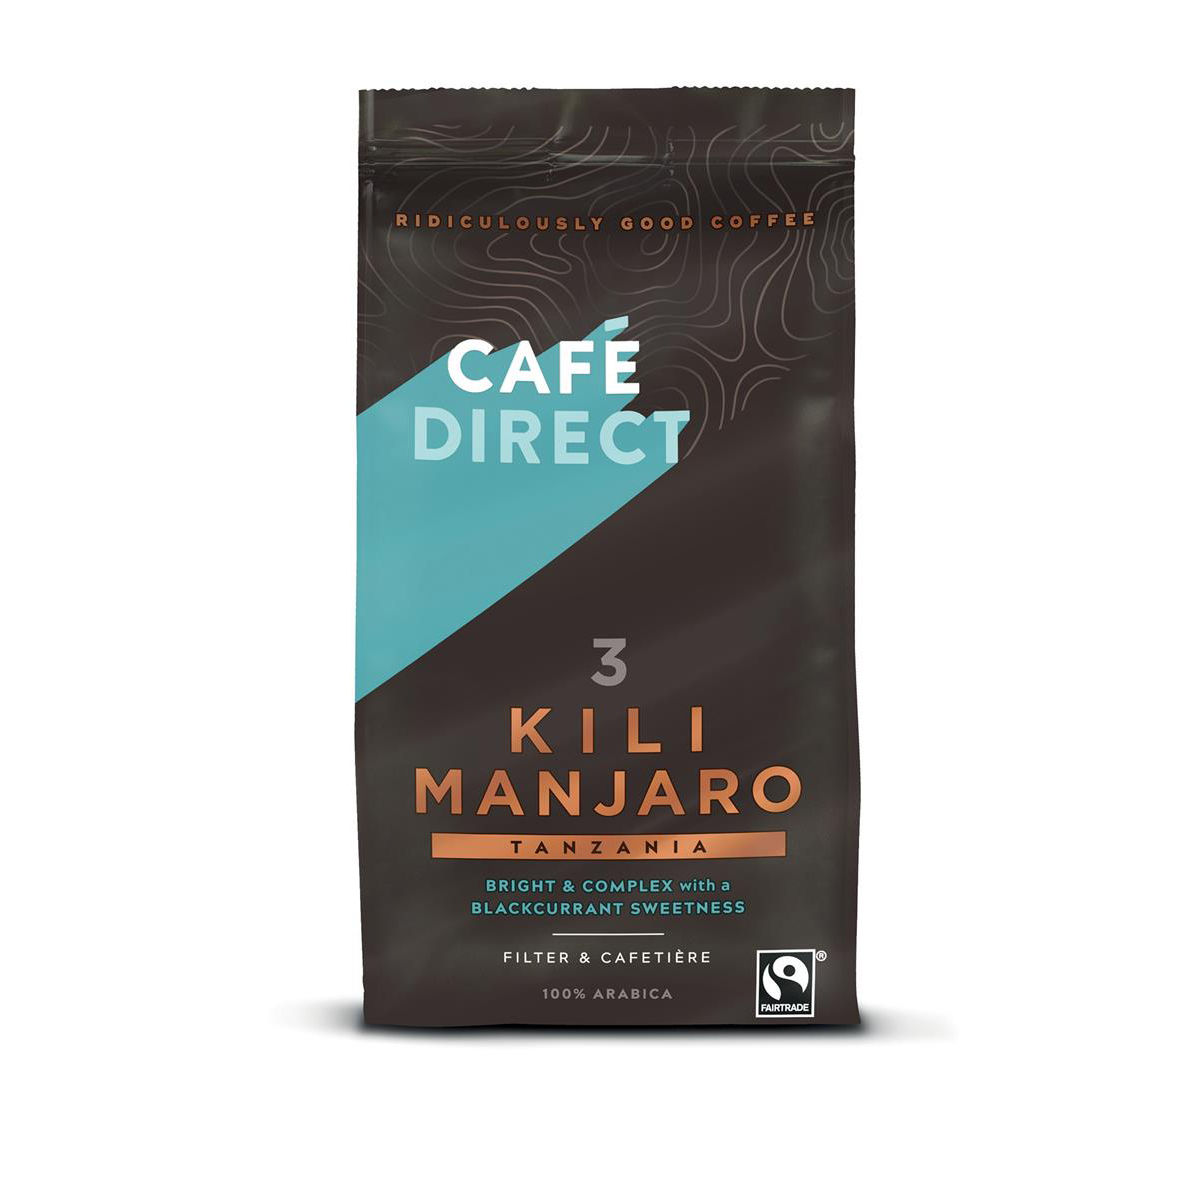 Cafe Direct Kilimanjaro Tanzania Fairtrade Roast and Ground Coffee 227g Ref FCR0004